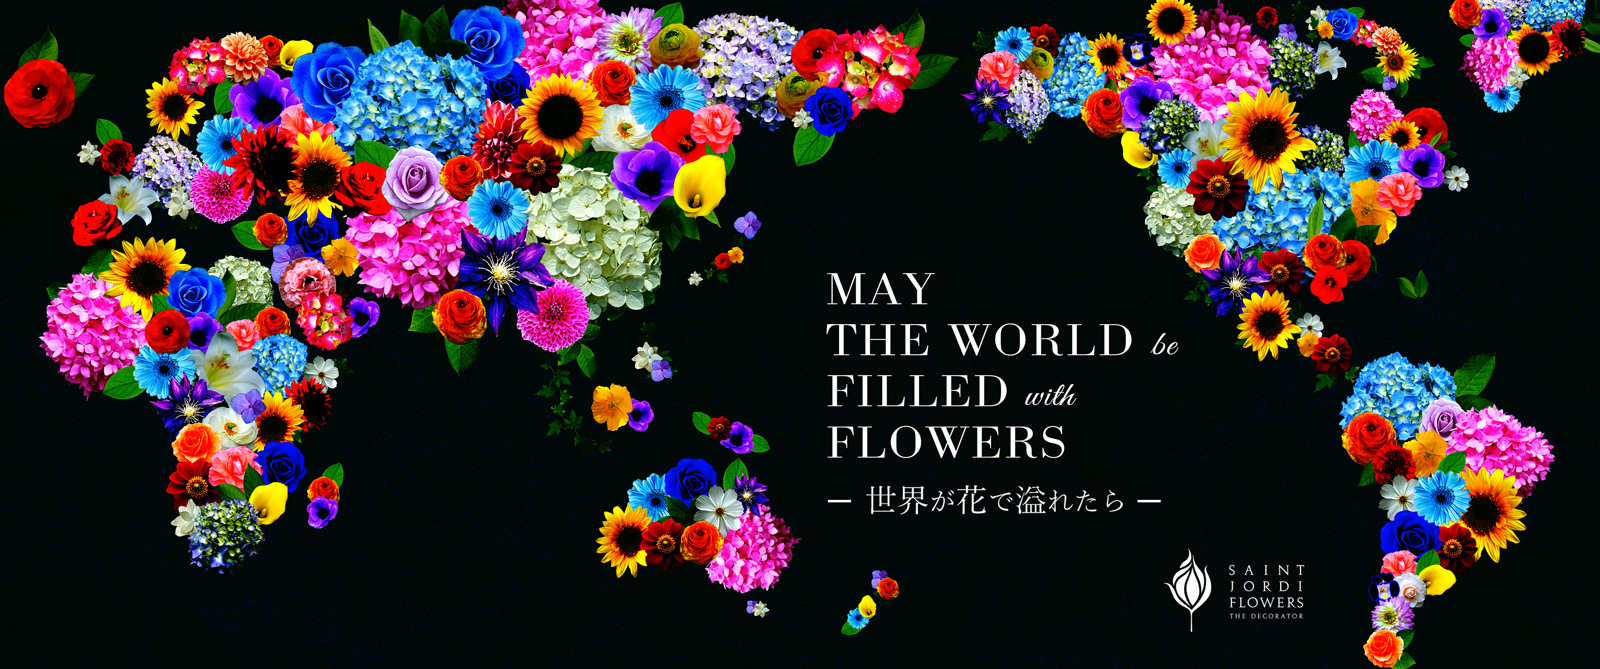 MAY THE WORLD be FILLED with FLOWERS -世界が花で溢れたら-